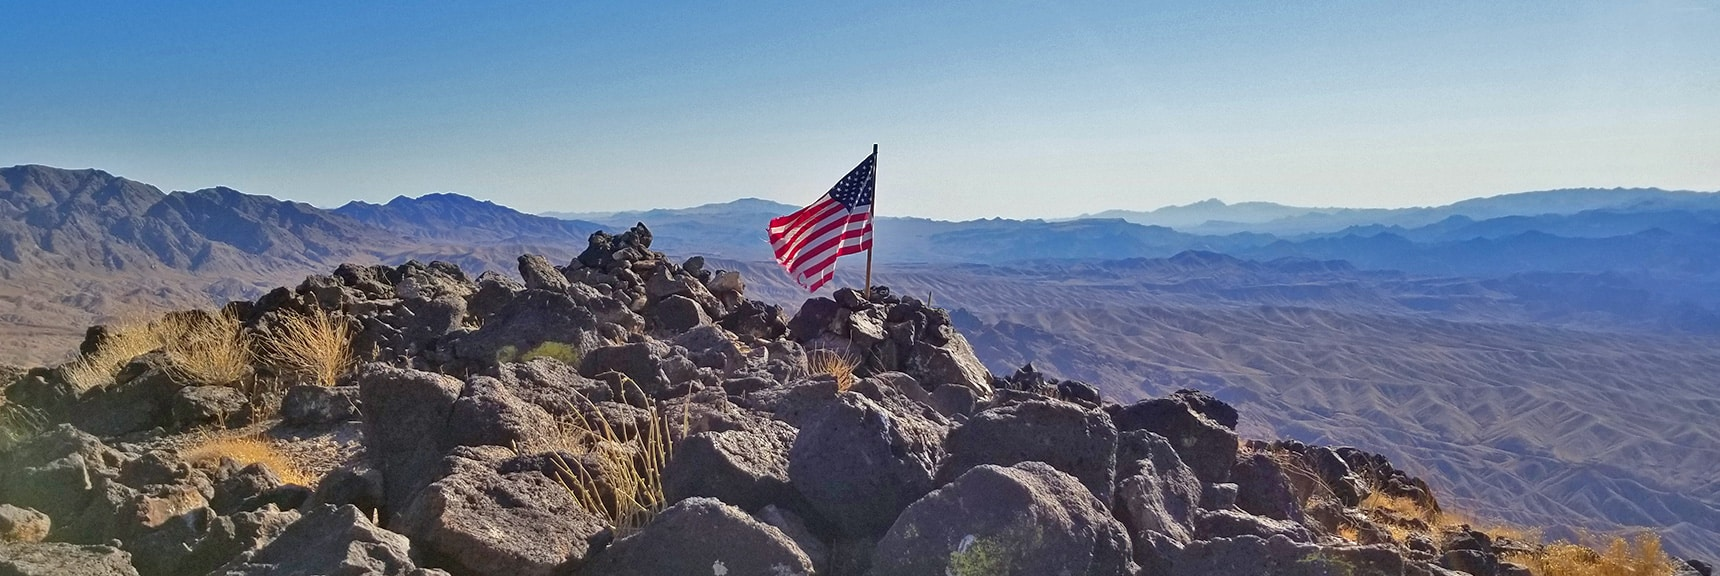 Flag Waving in the Wind on Fortification Hill Summit   Fortification Hill   Lake Mead National Recreation Area, Arizona